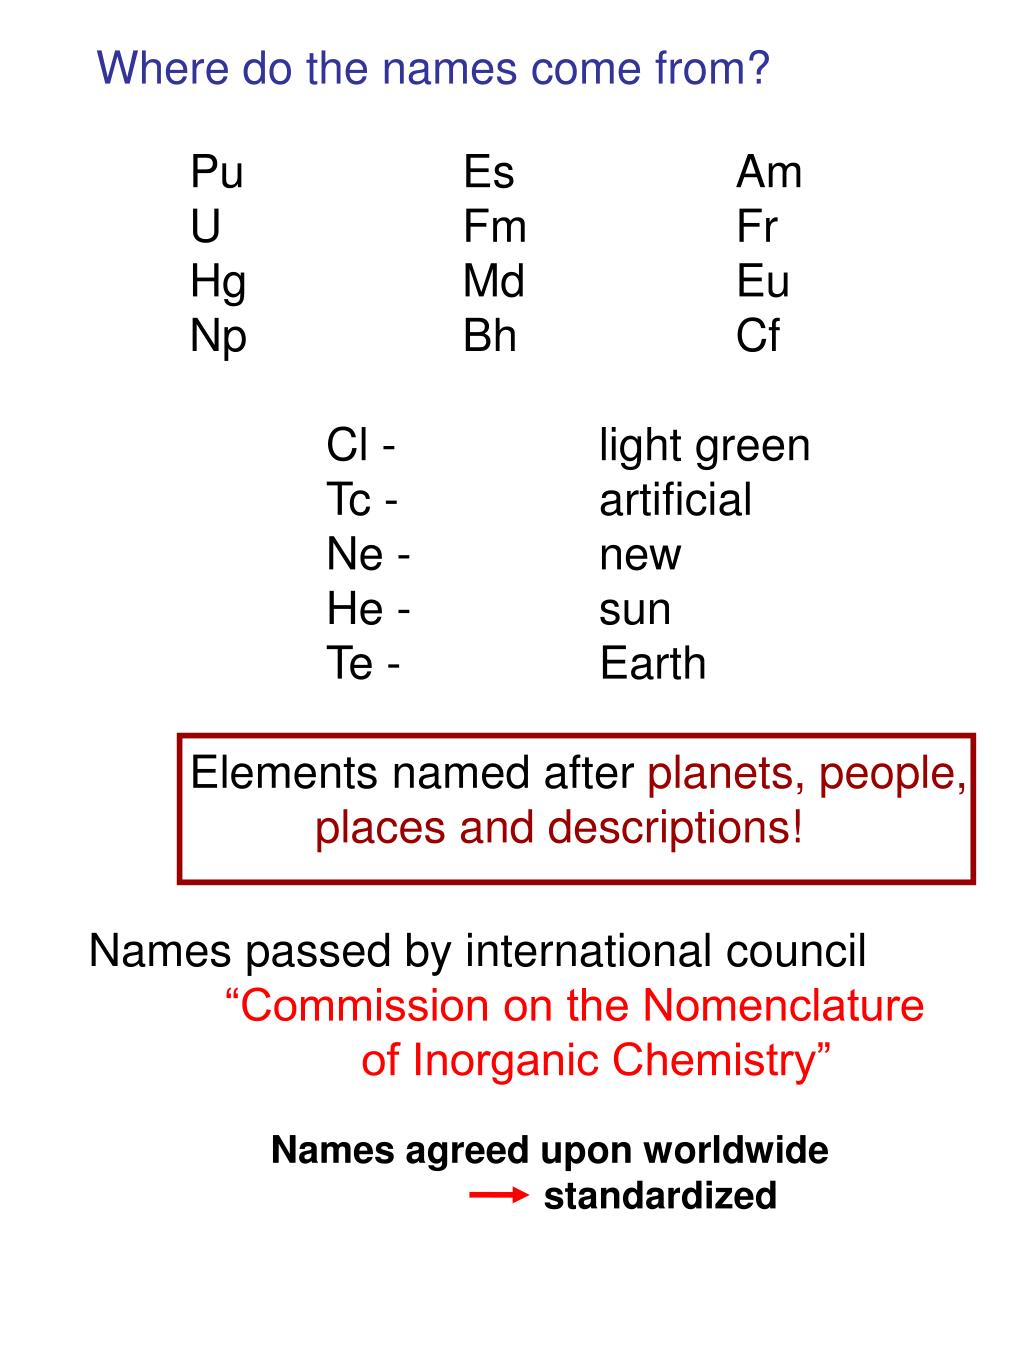 Where do the names come from?